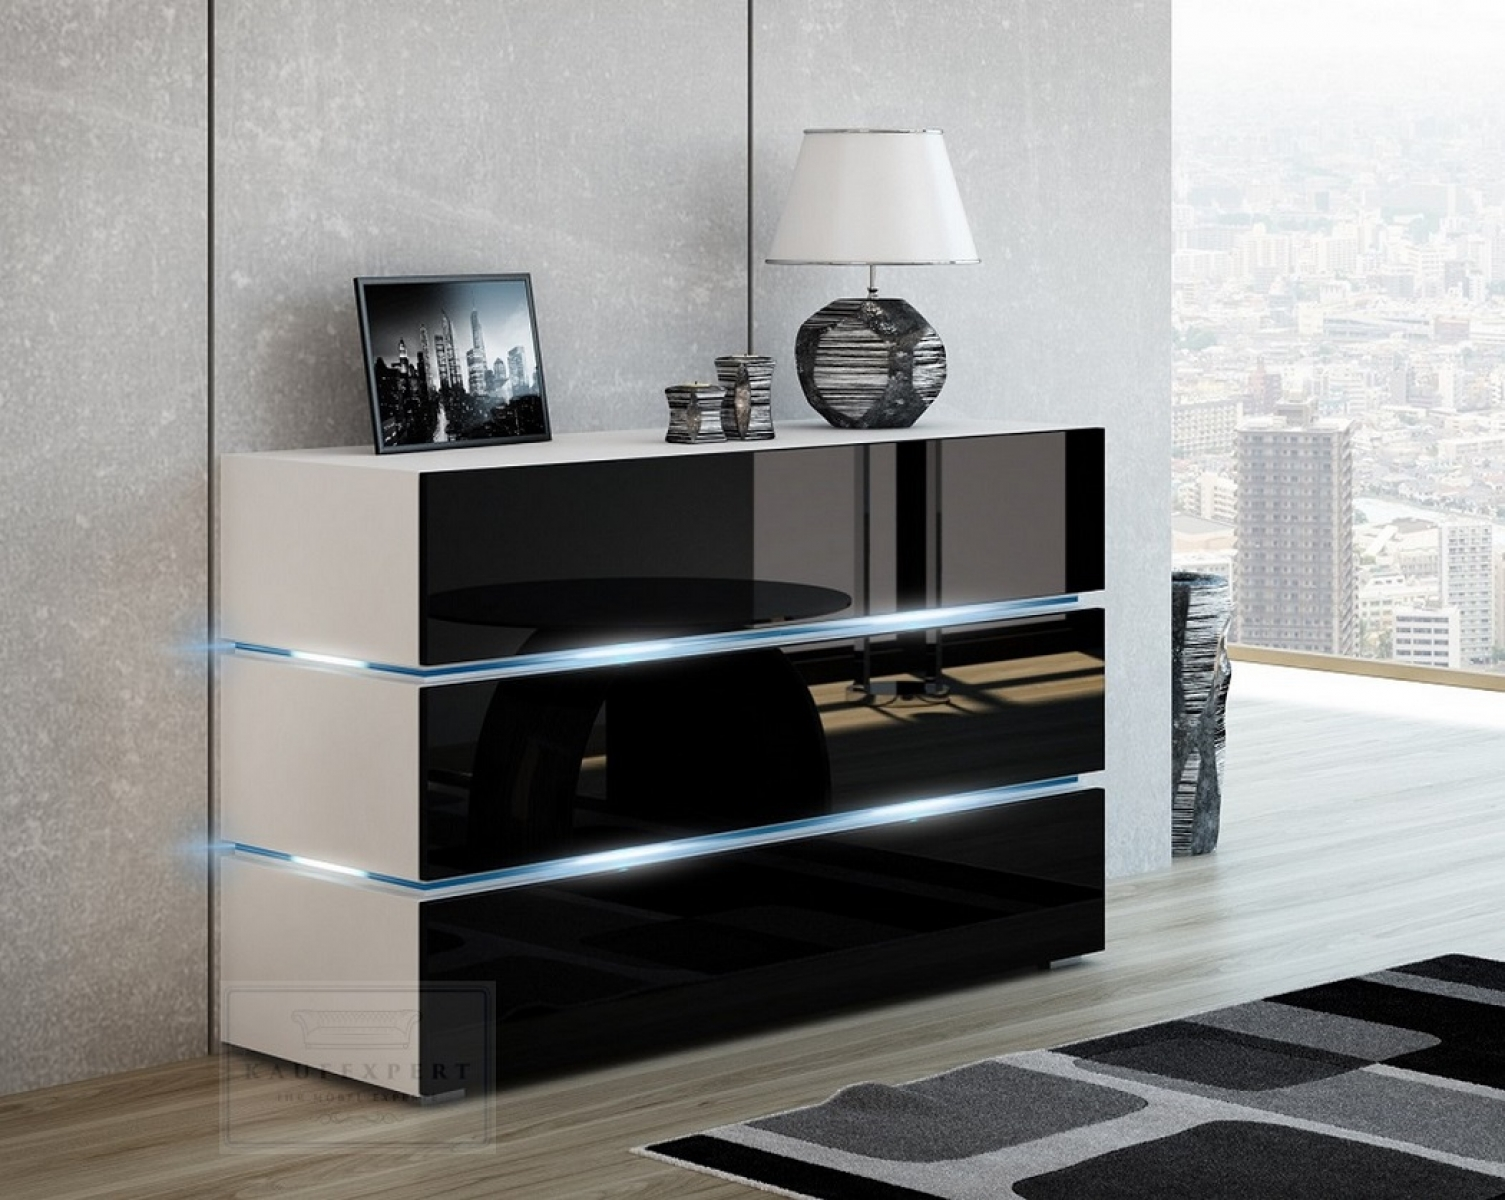 hochglanz wei 120 cheap lagos garderoben neu hochglanz wei cm breit in stein with hochglanz wei. Black Bedroom Furniture Sets. Home Design Ideas